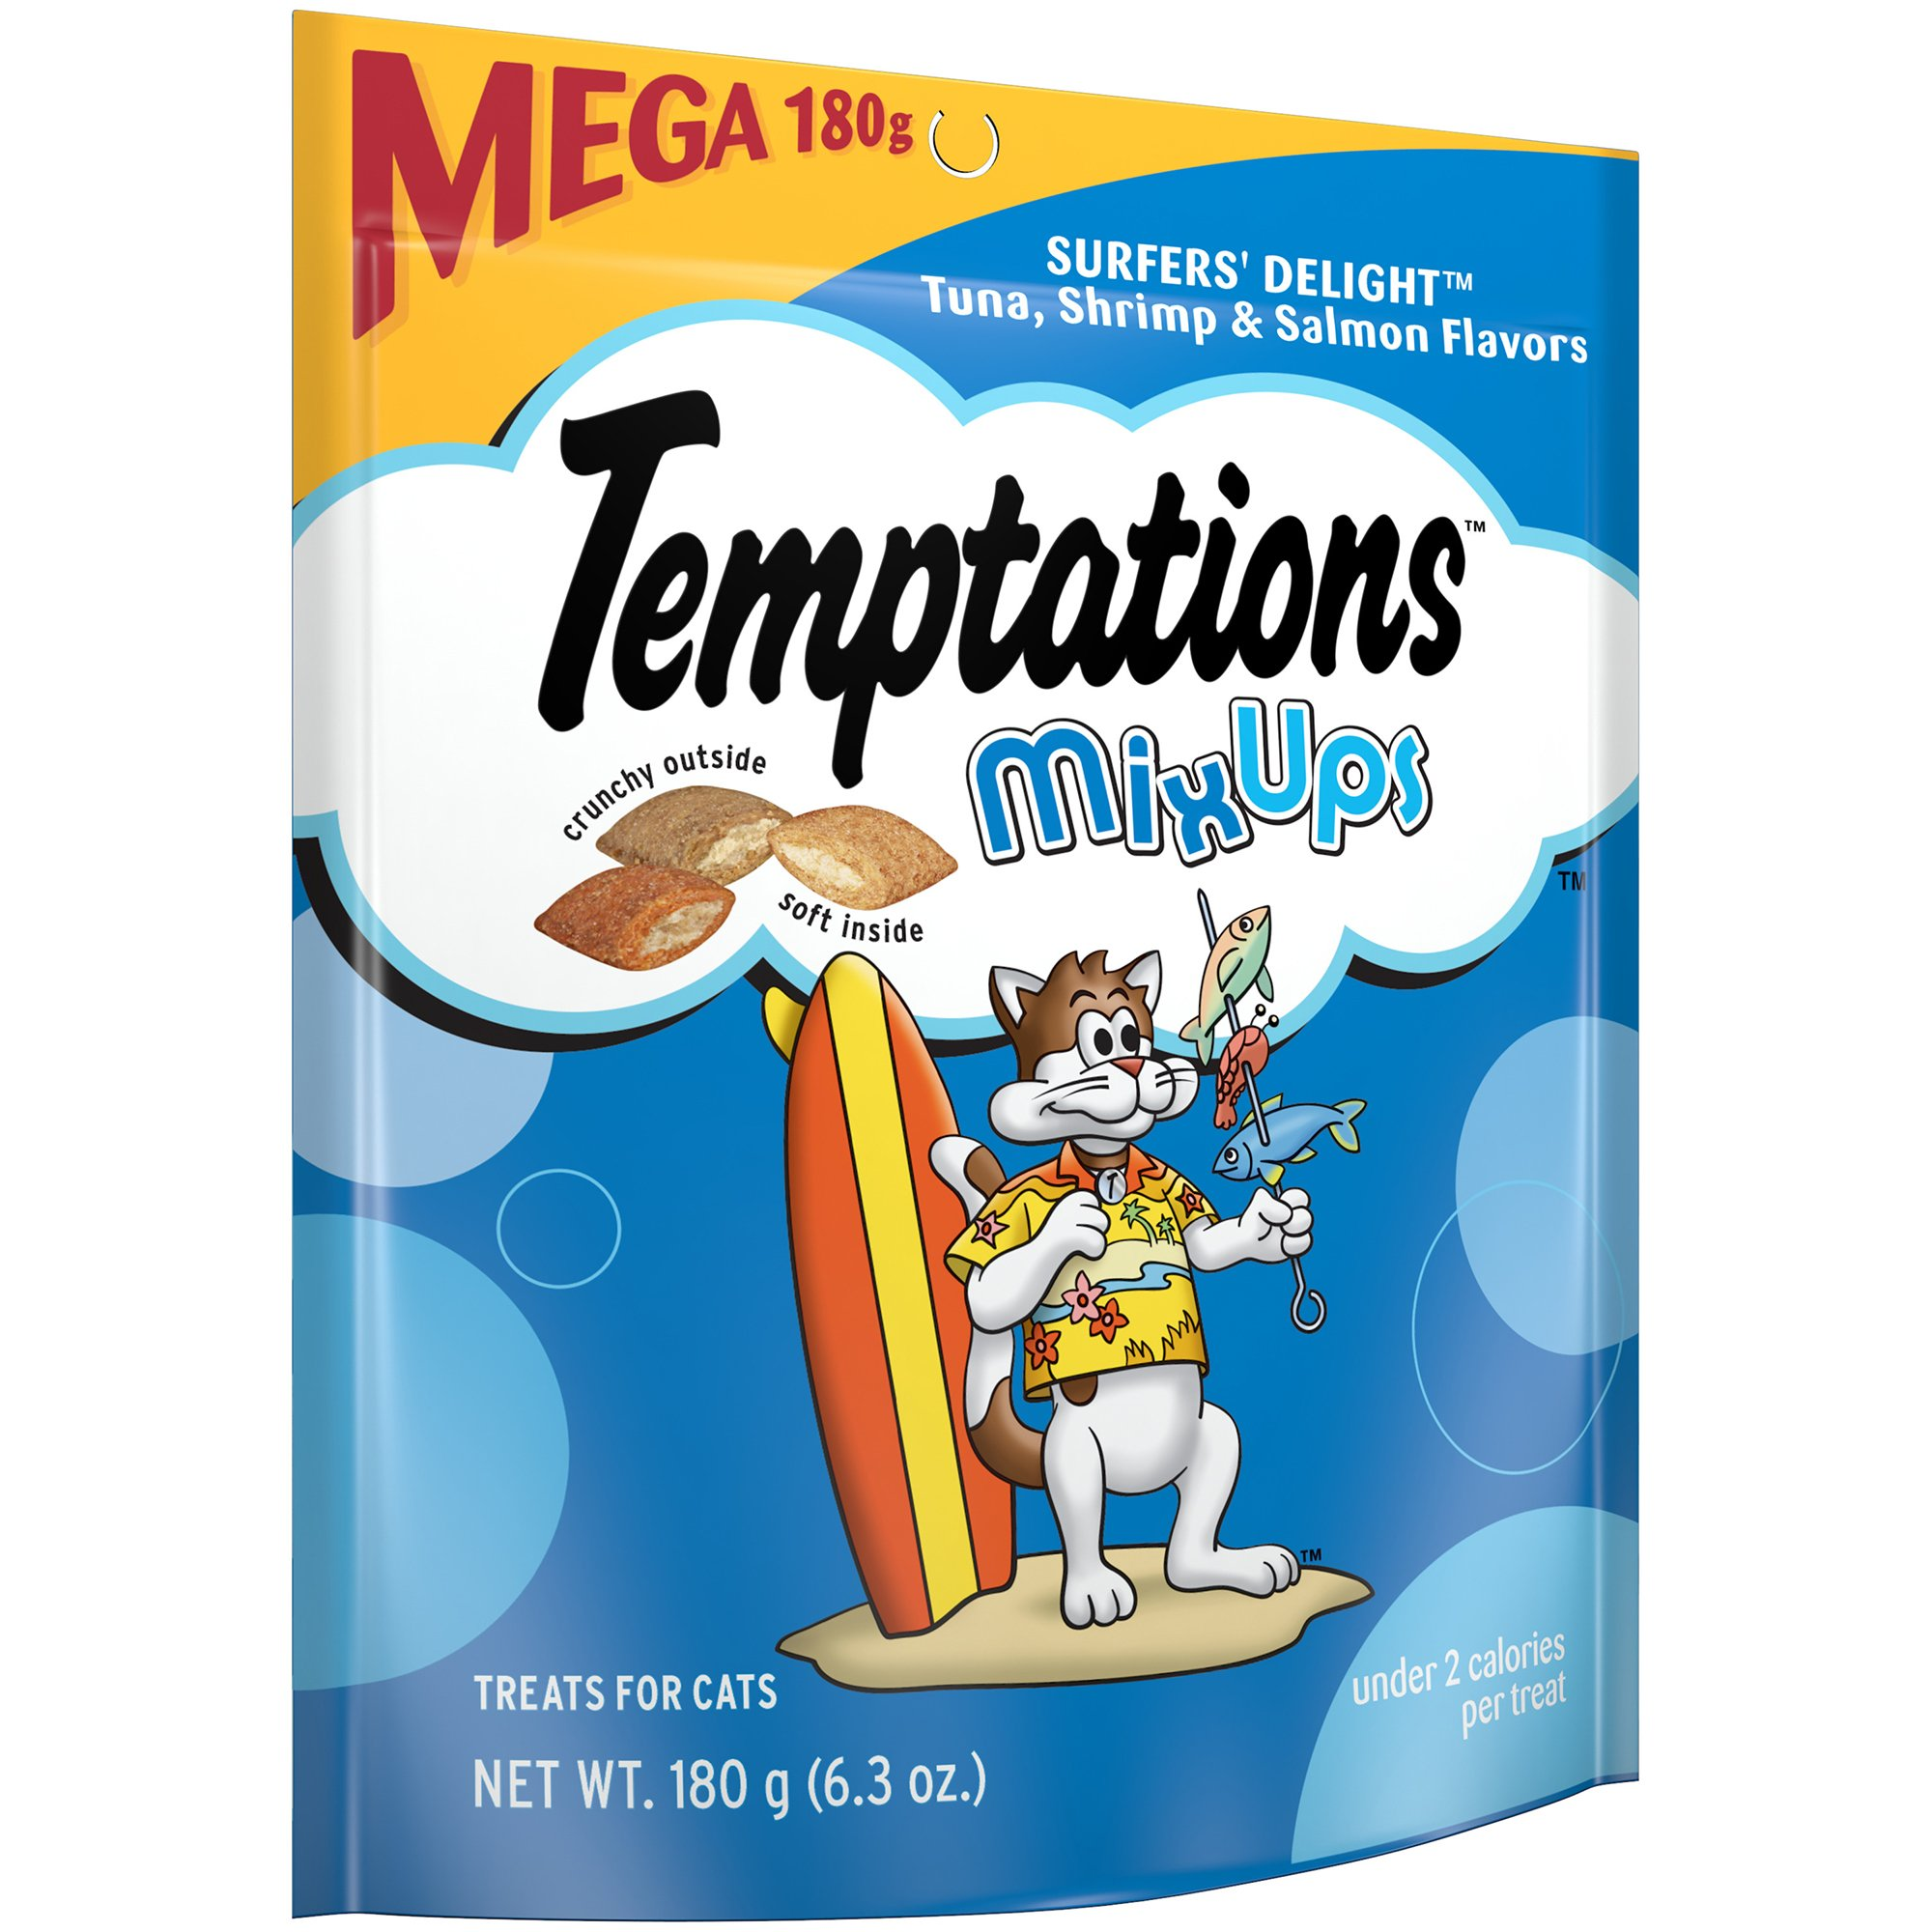 Temptations Mixups Cat Treats Surfer'S Delight Flavor, (10) 6.3 Oz. Pouches